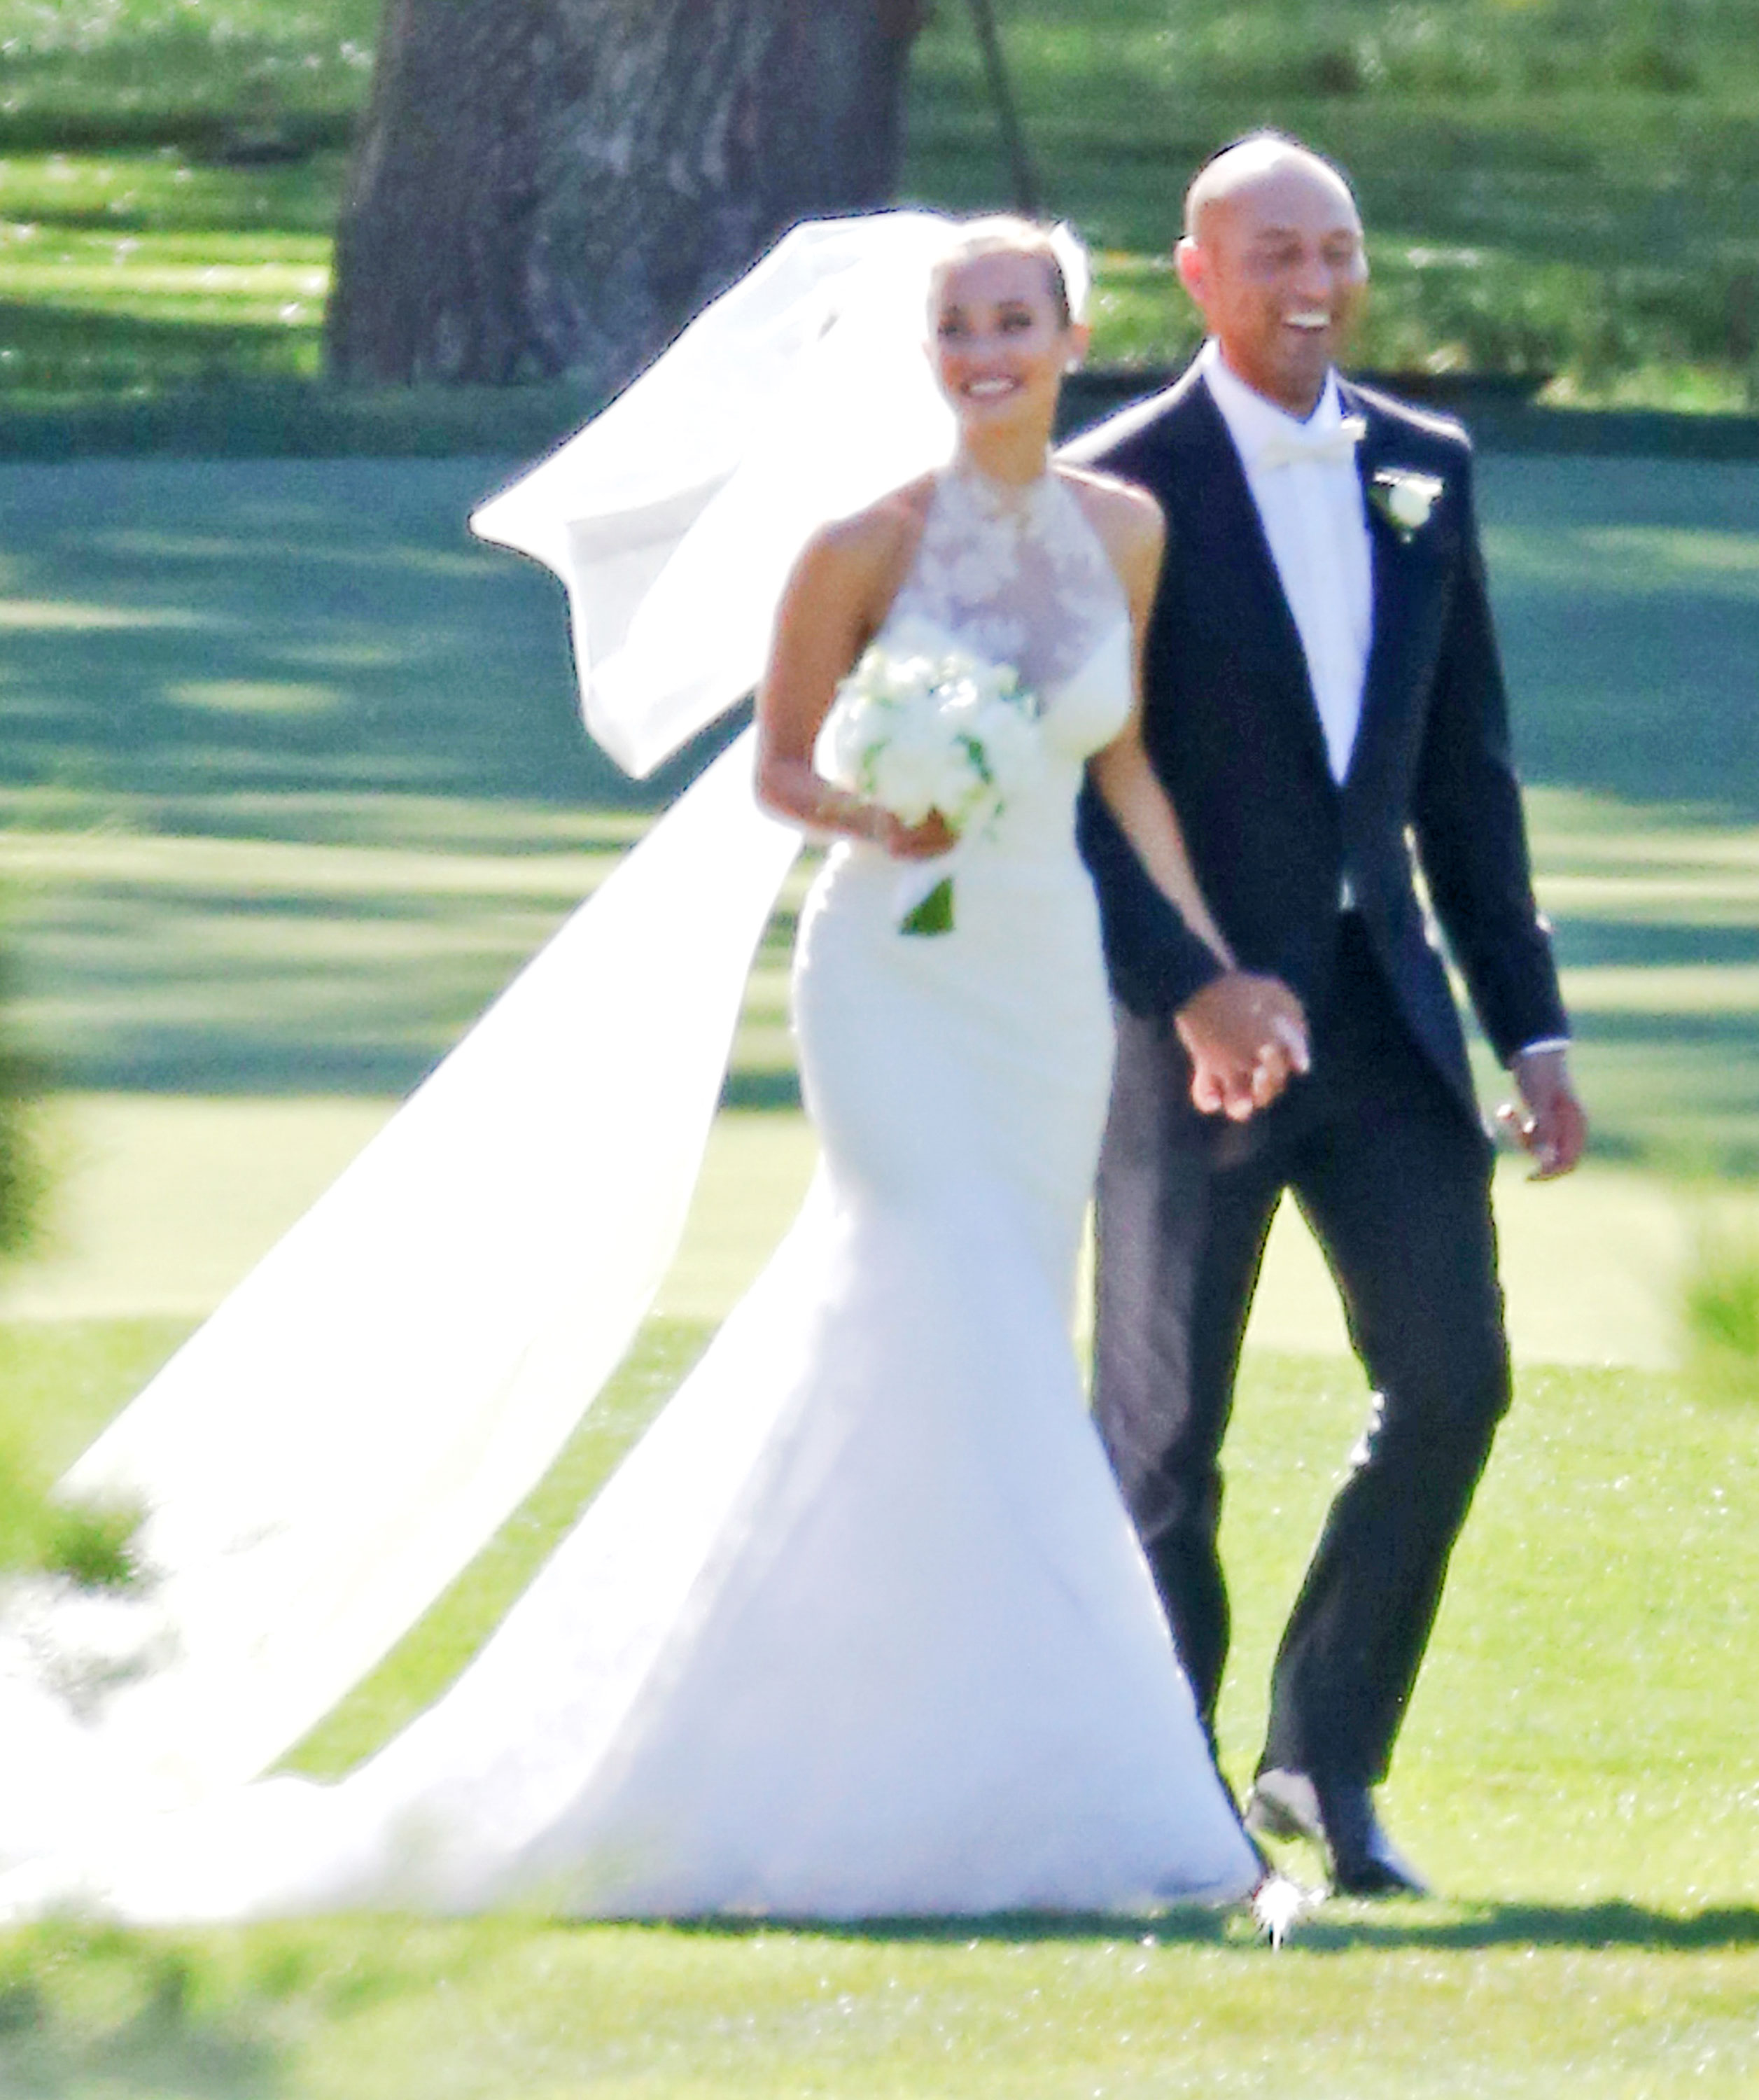 Hannah Davis And Derek Jeter On Their Wedding Day Infphoto Fameflynet